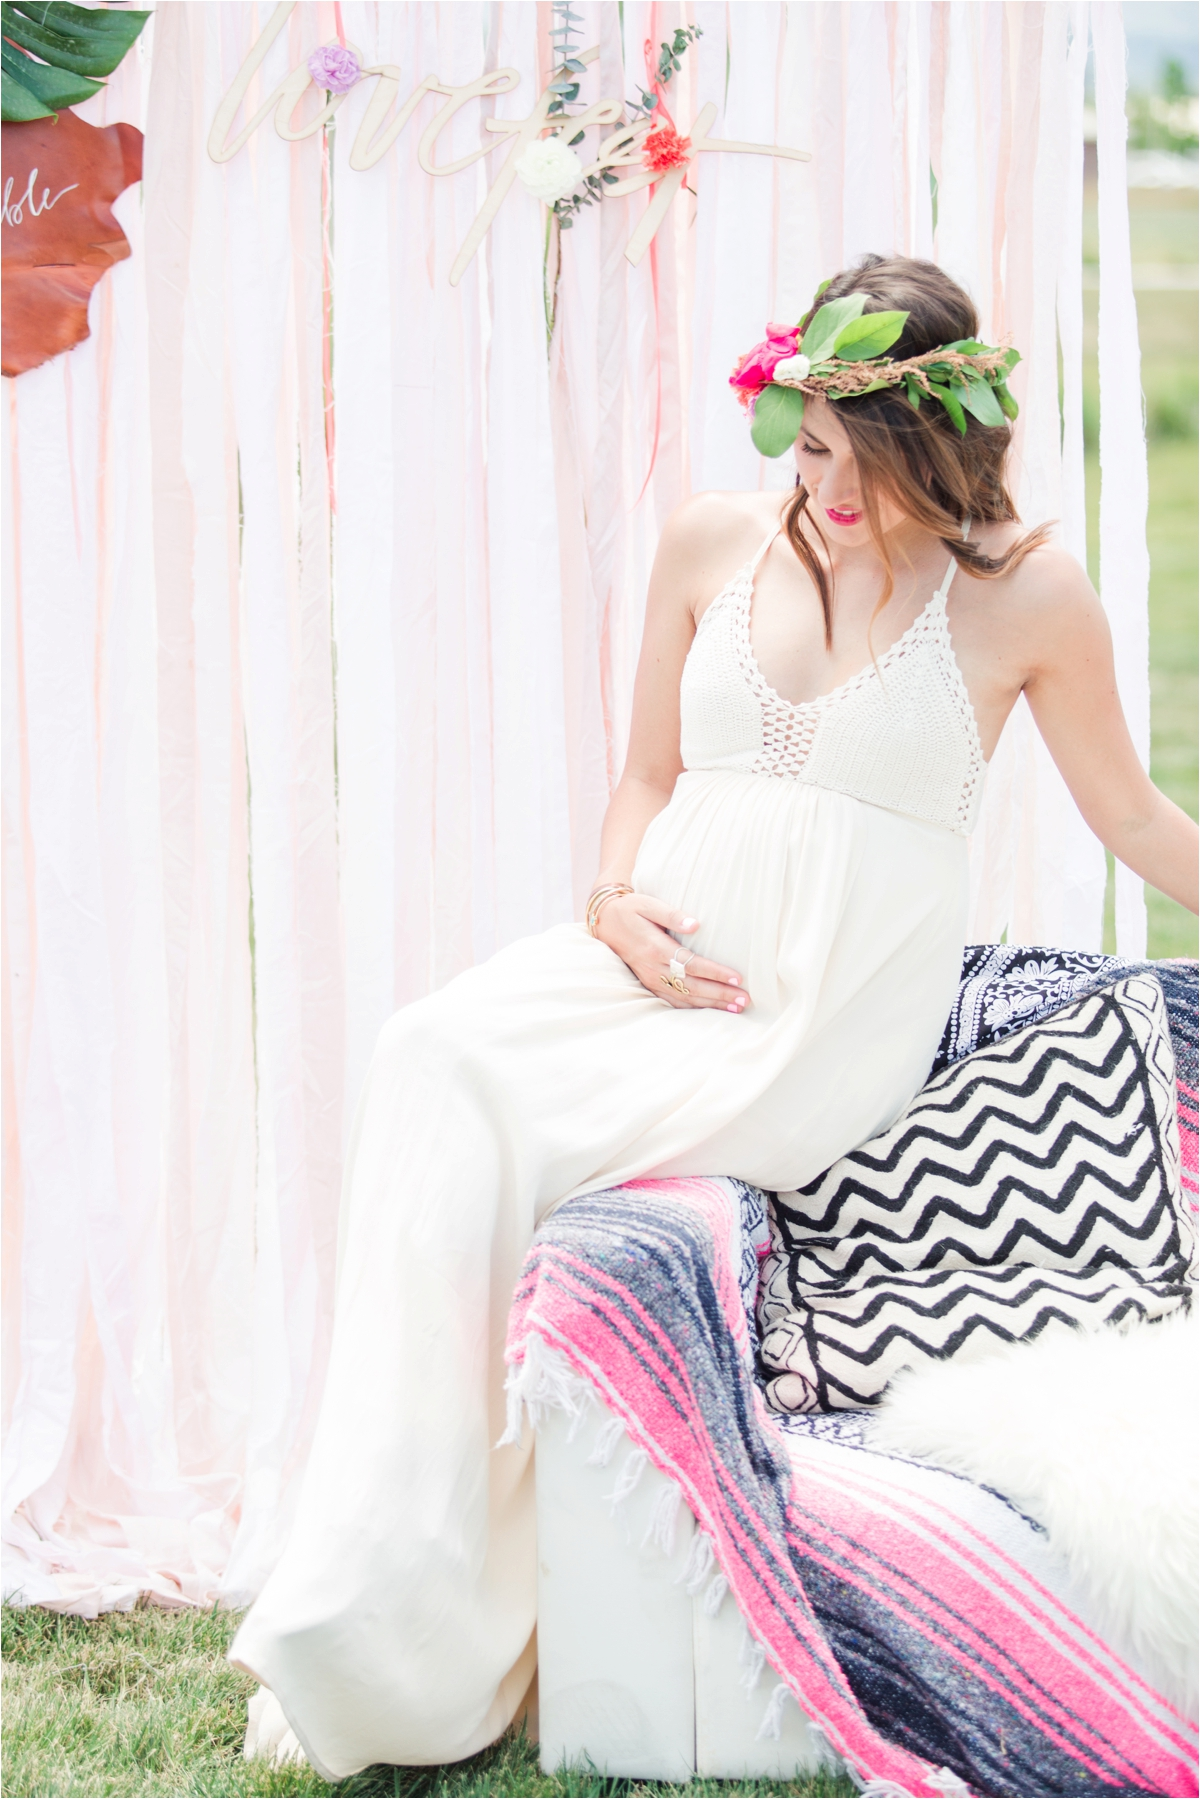 Bohemian baby shower and maternity portrait shoot at Martial Cottle Park in San Jose, CA. Photos by Briana Calderon Photography based in the San Francisco Bay Area in California.